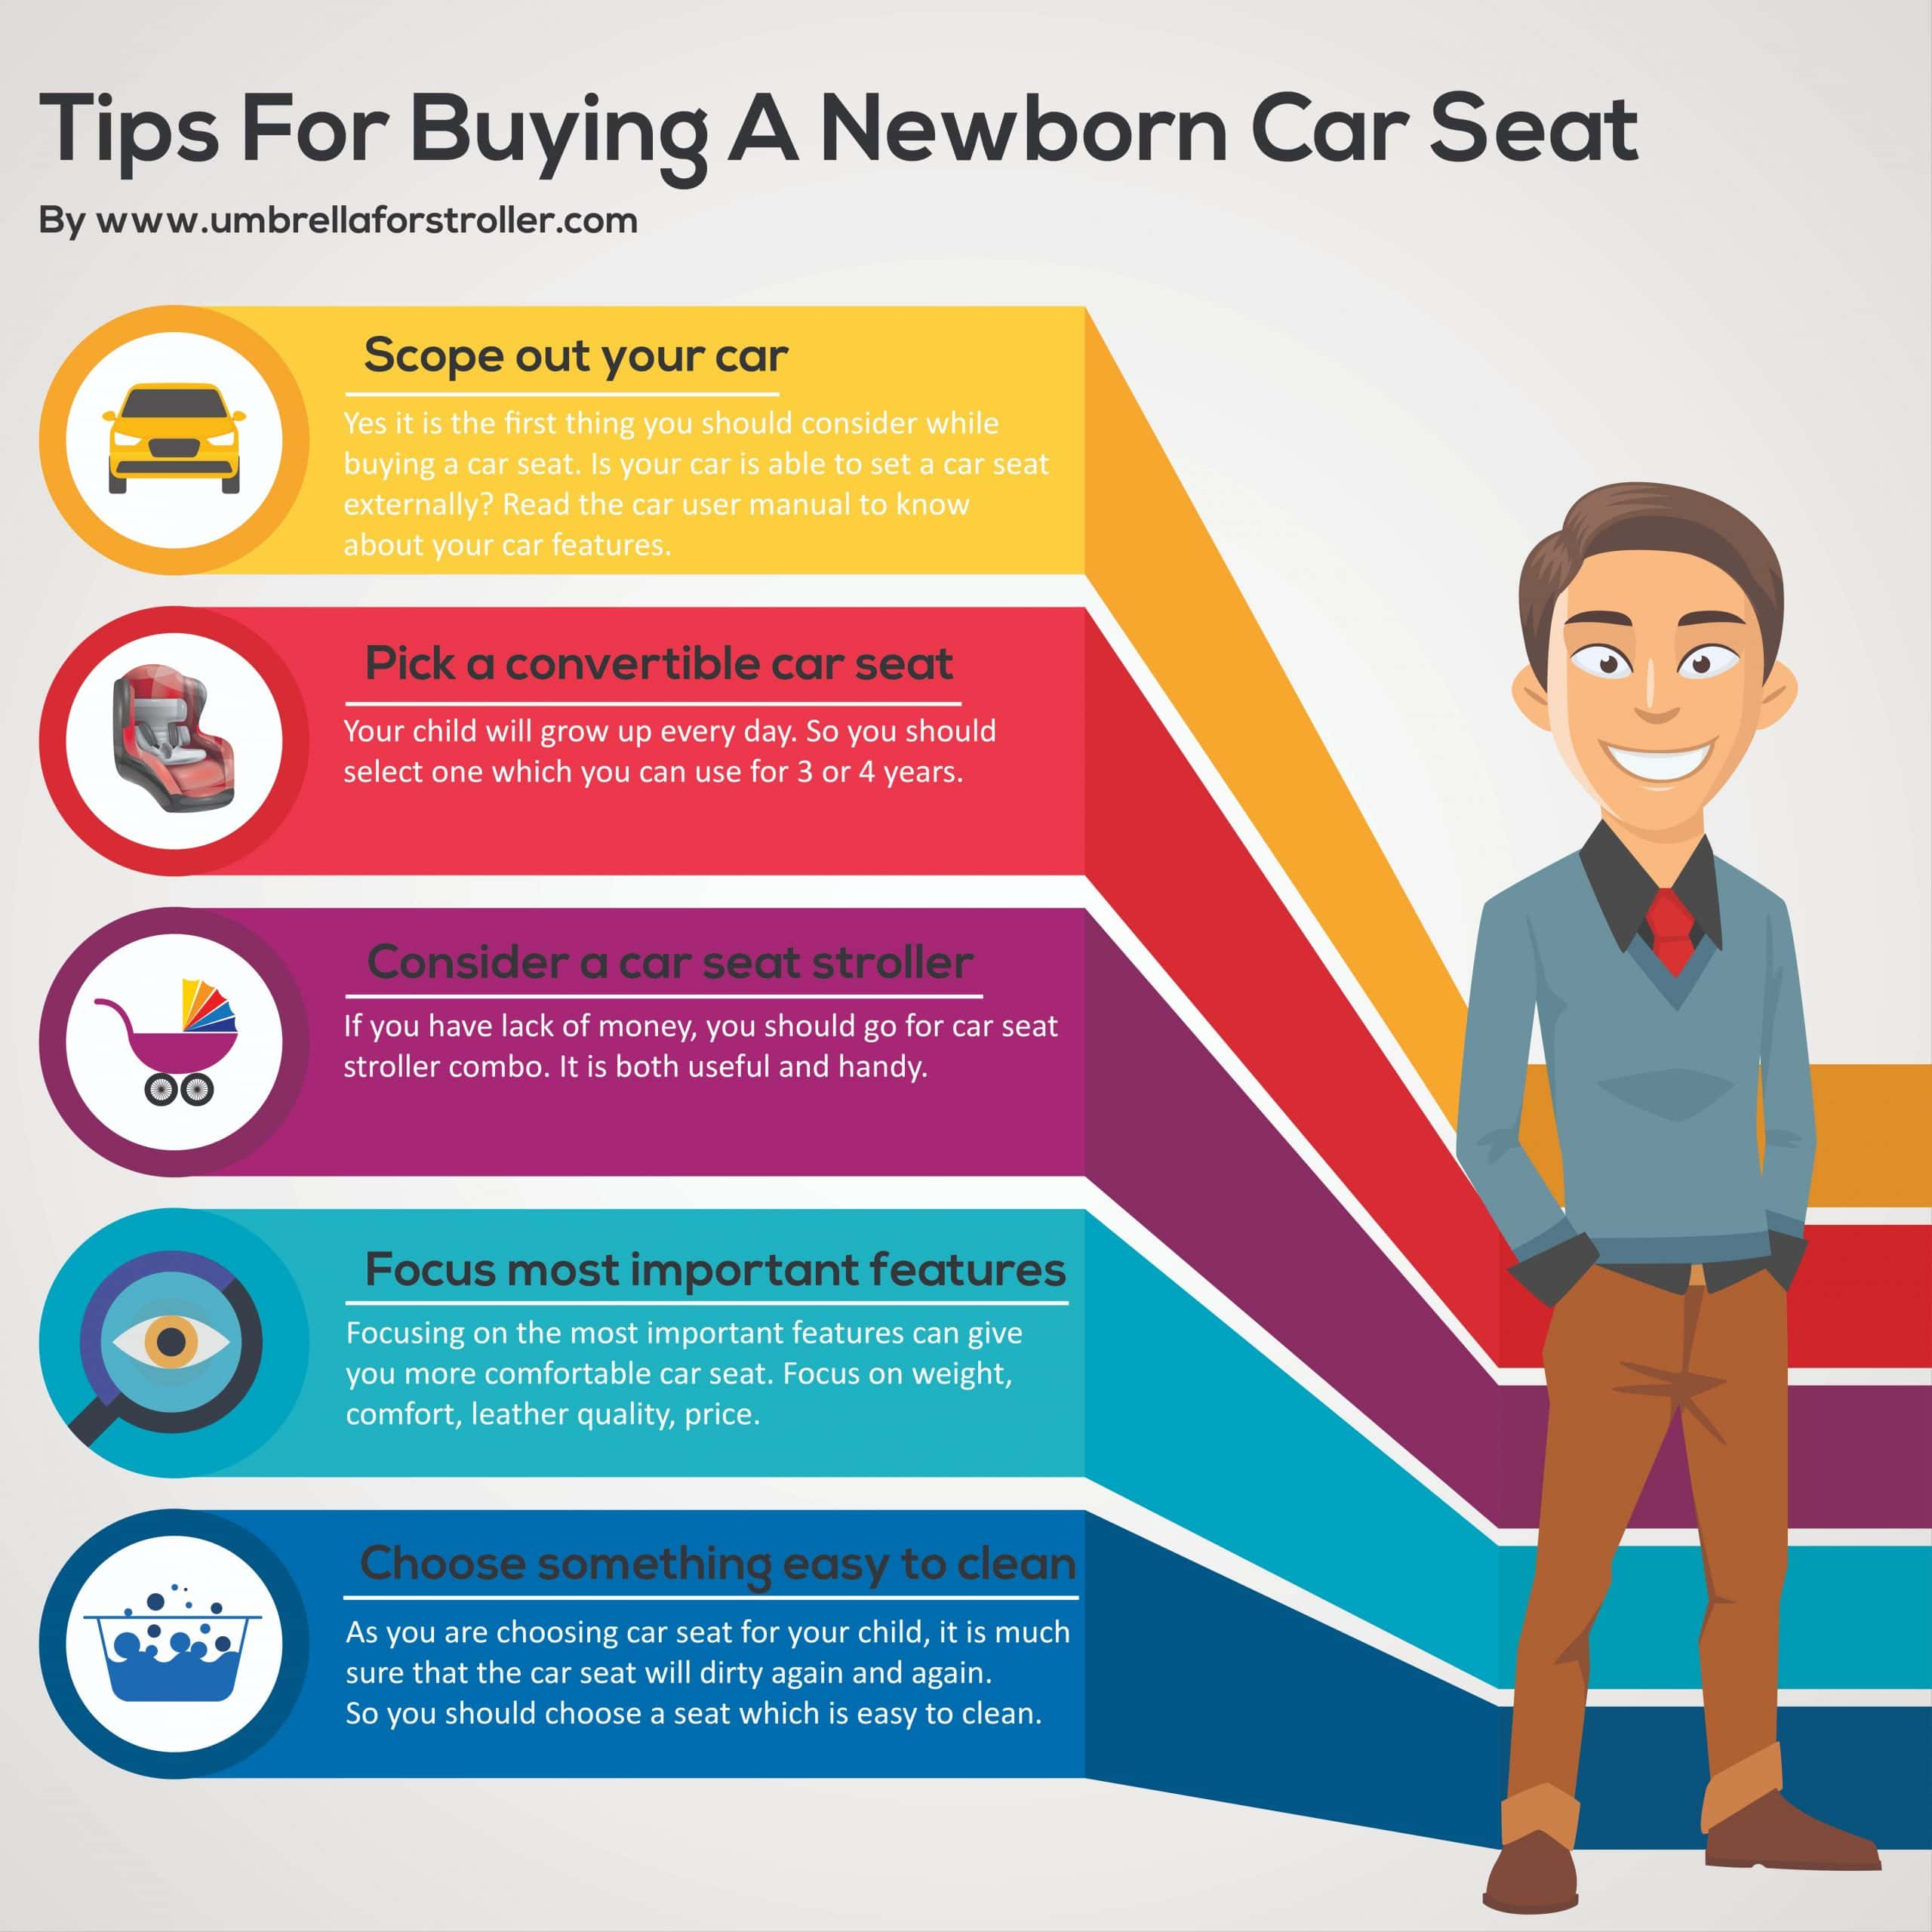 Tips for buying a car seat